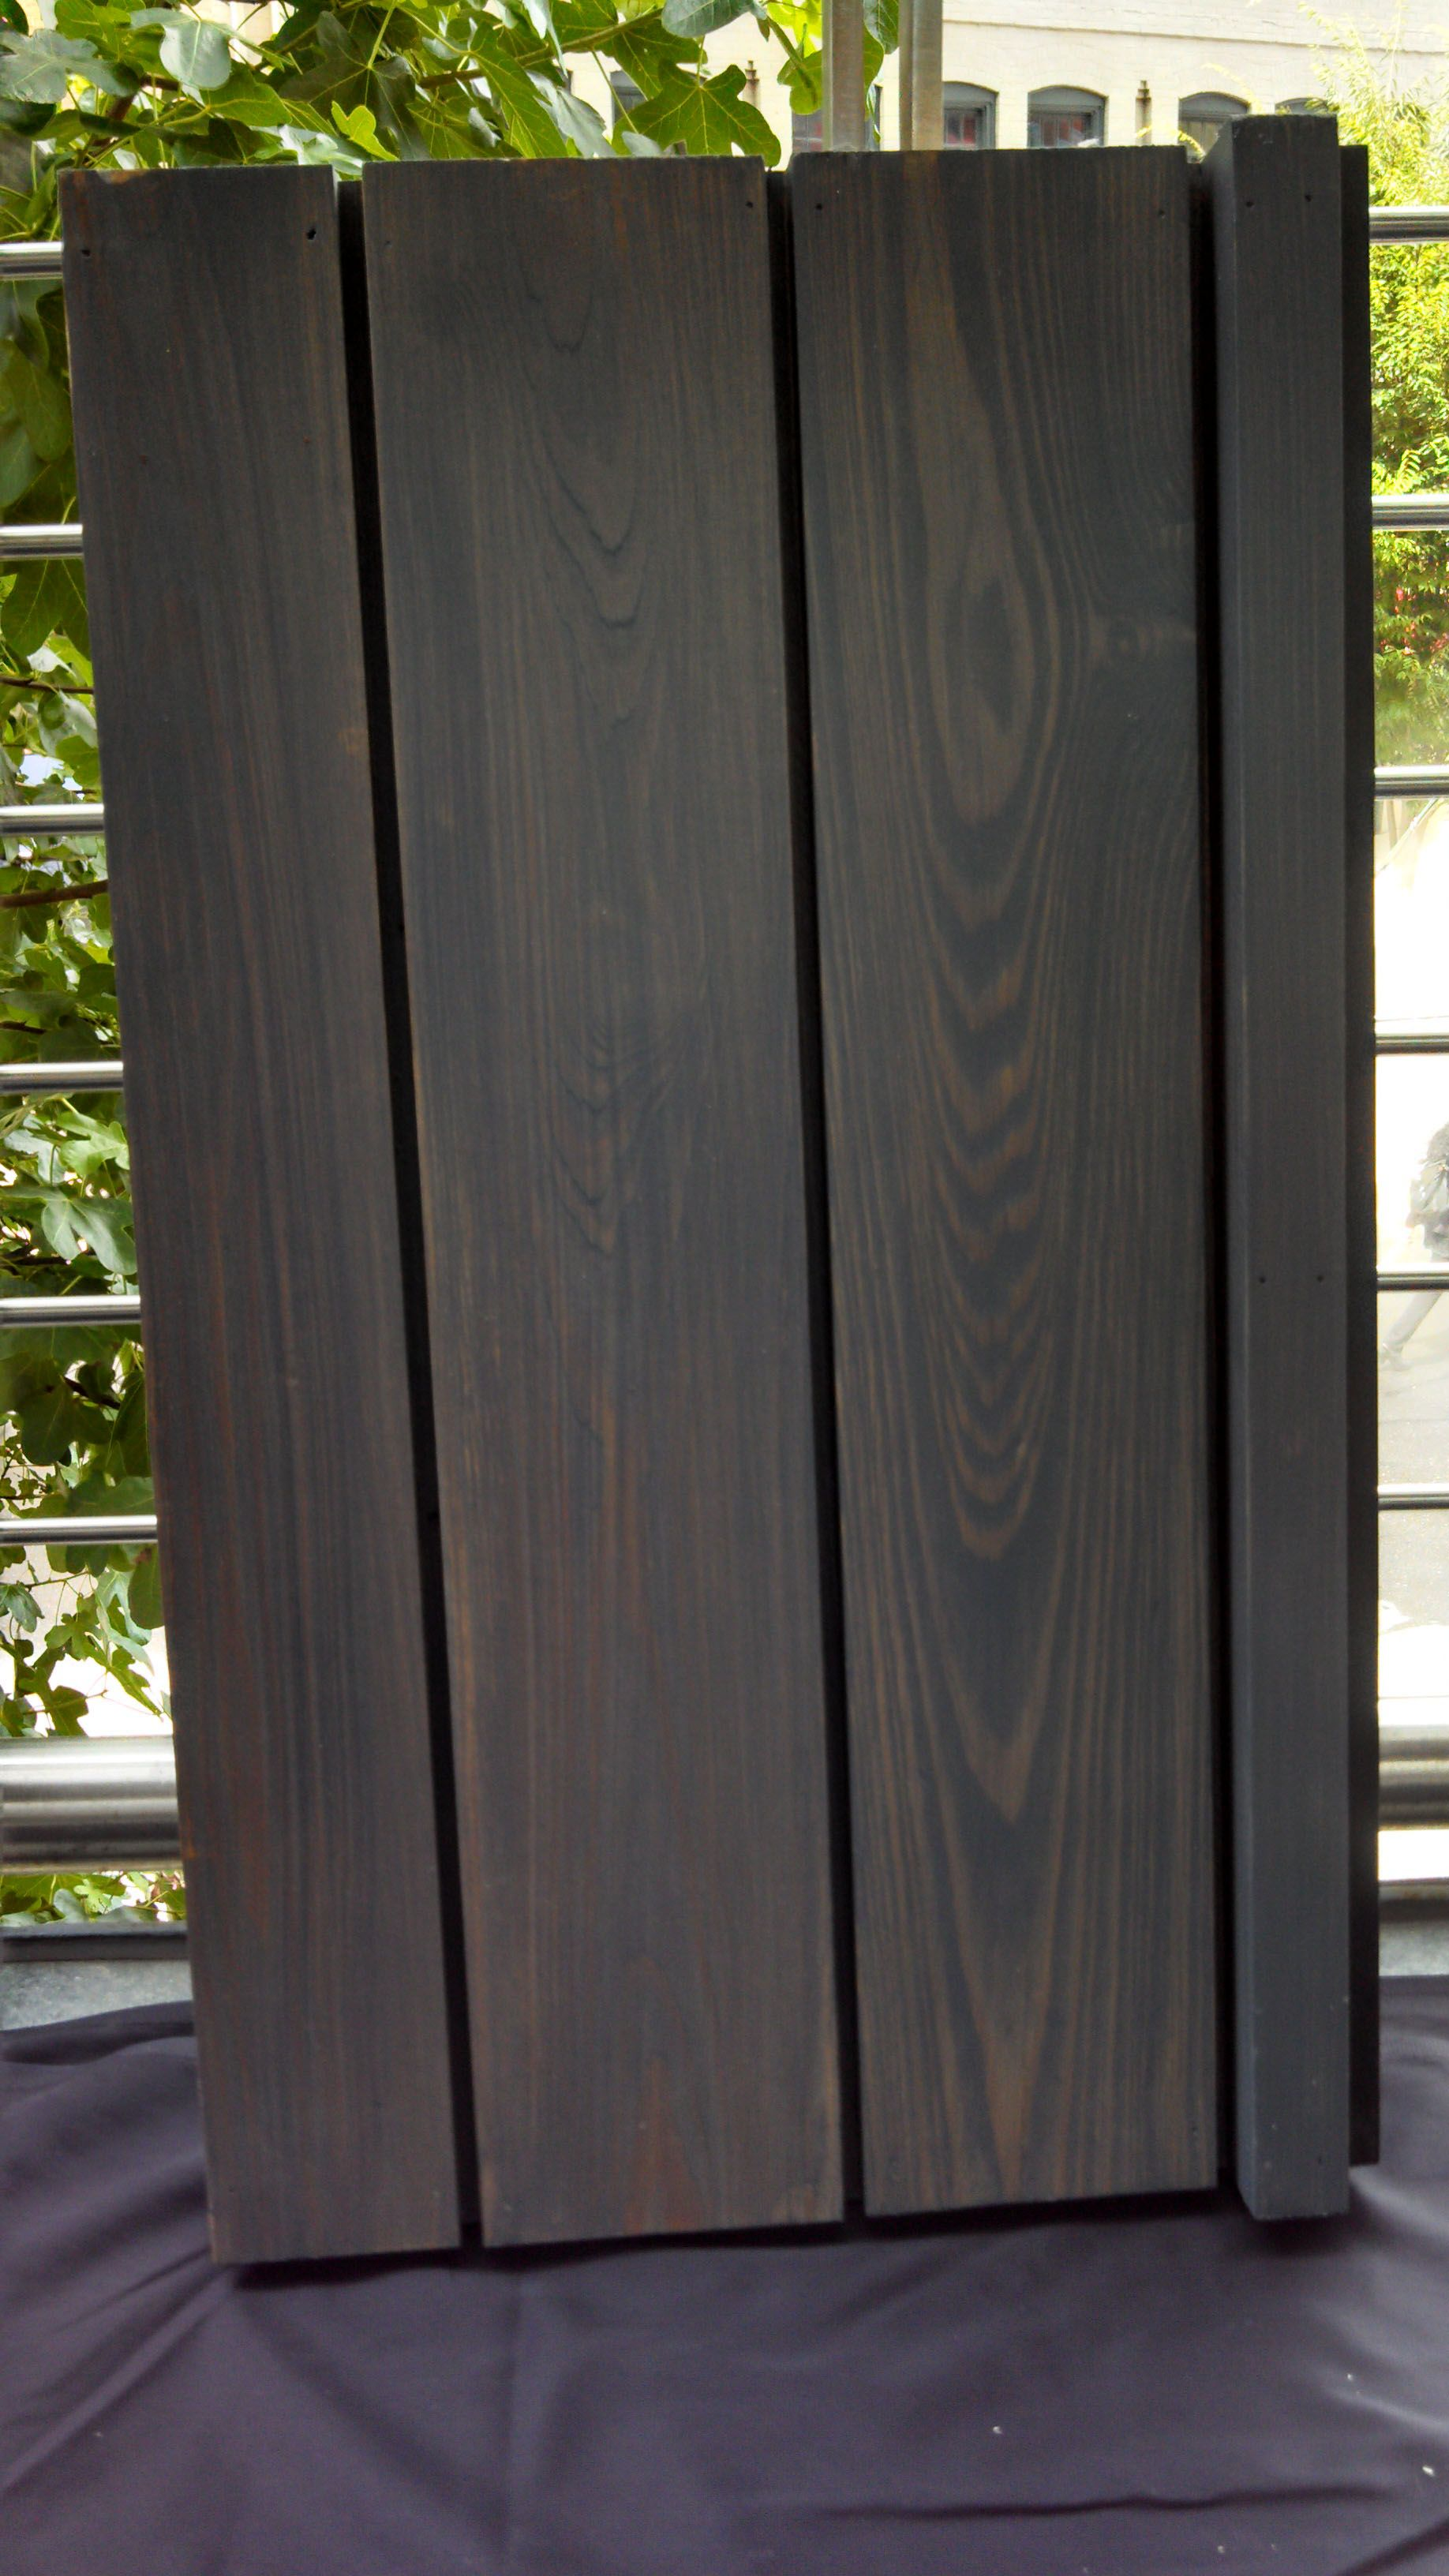 Exterior Siding Cabot S Semi Solid Slate Gray Deck Stain Colors Staining Deck Grey Deck Stain